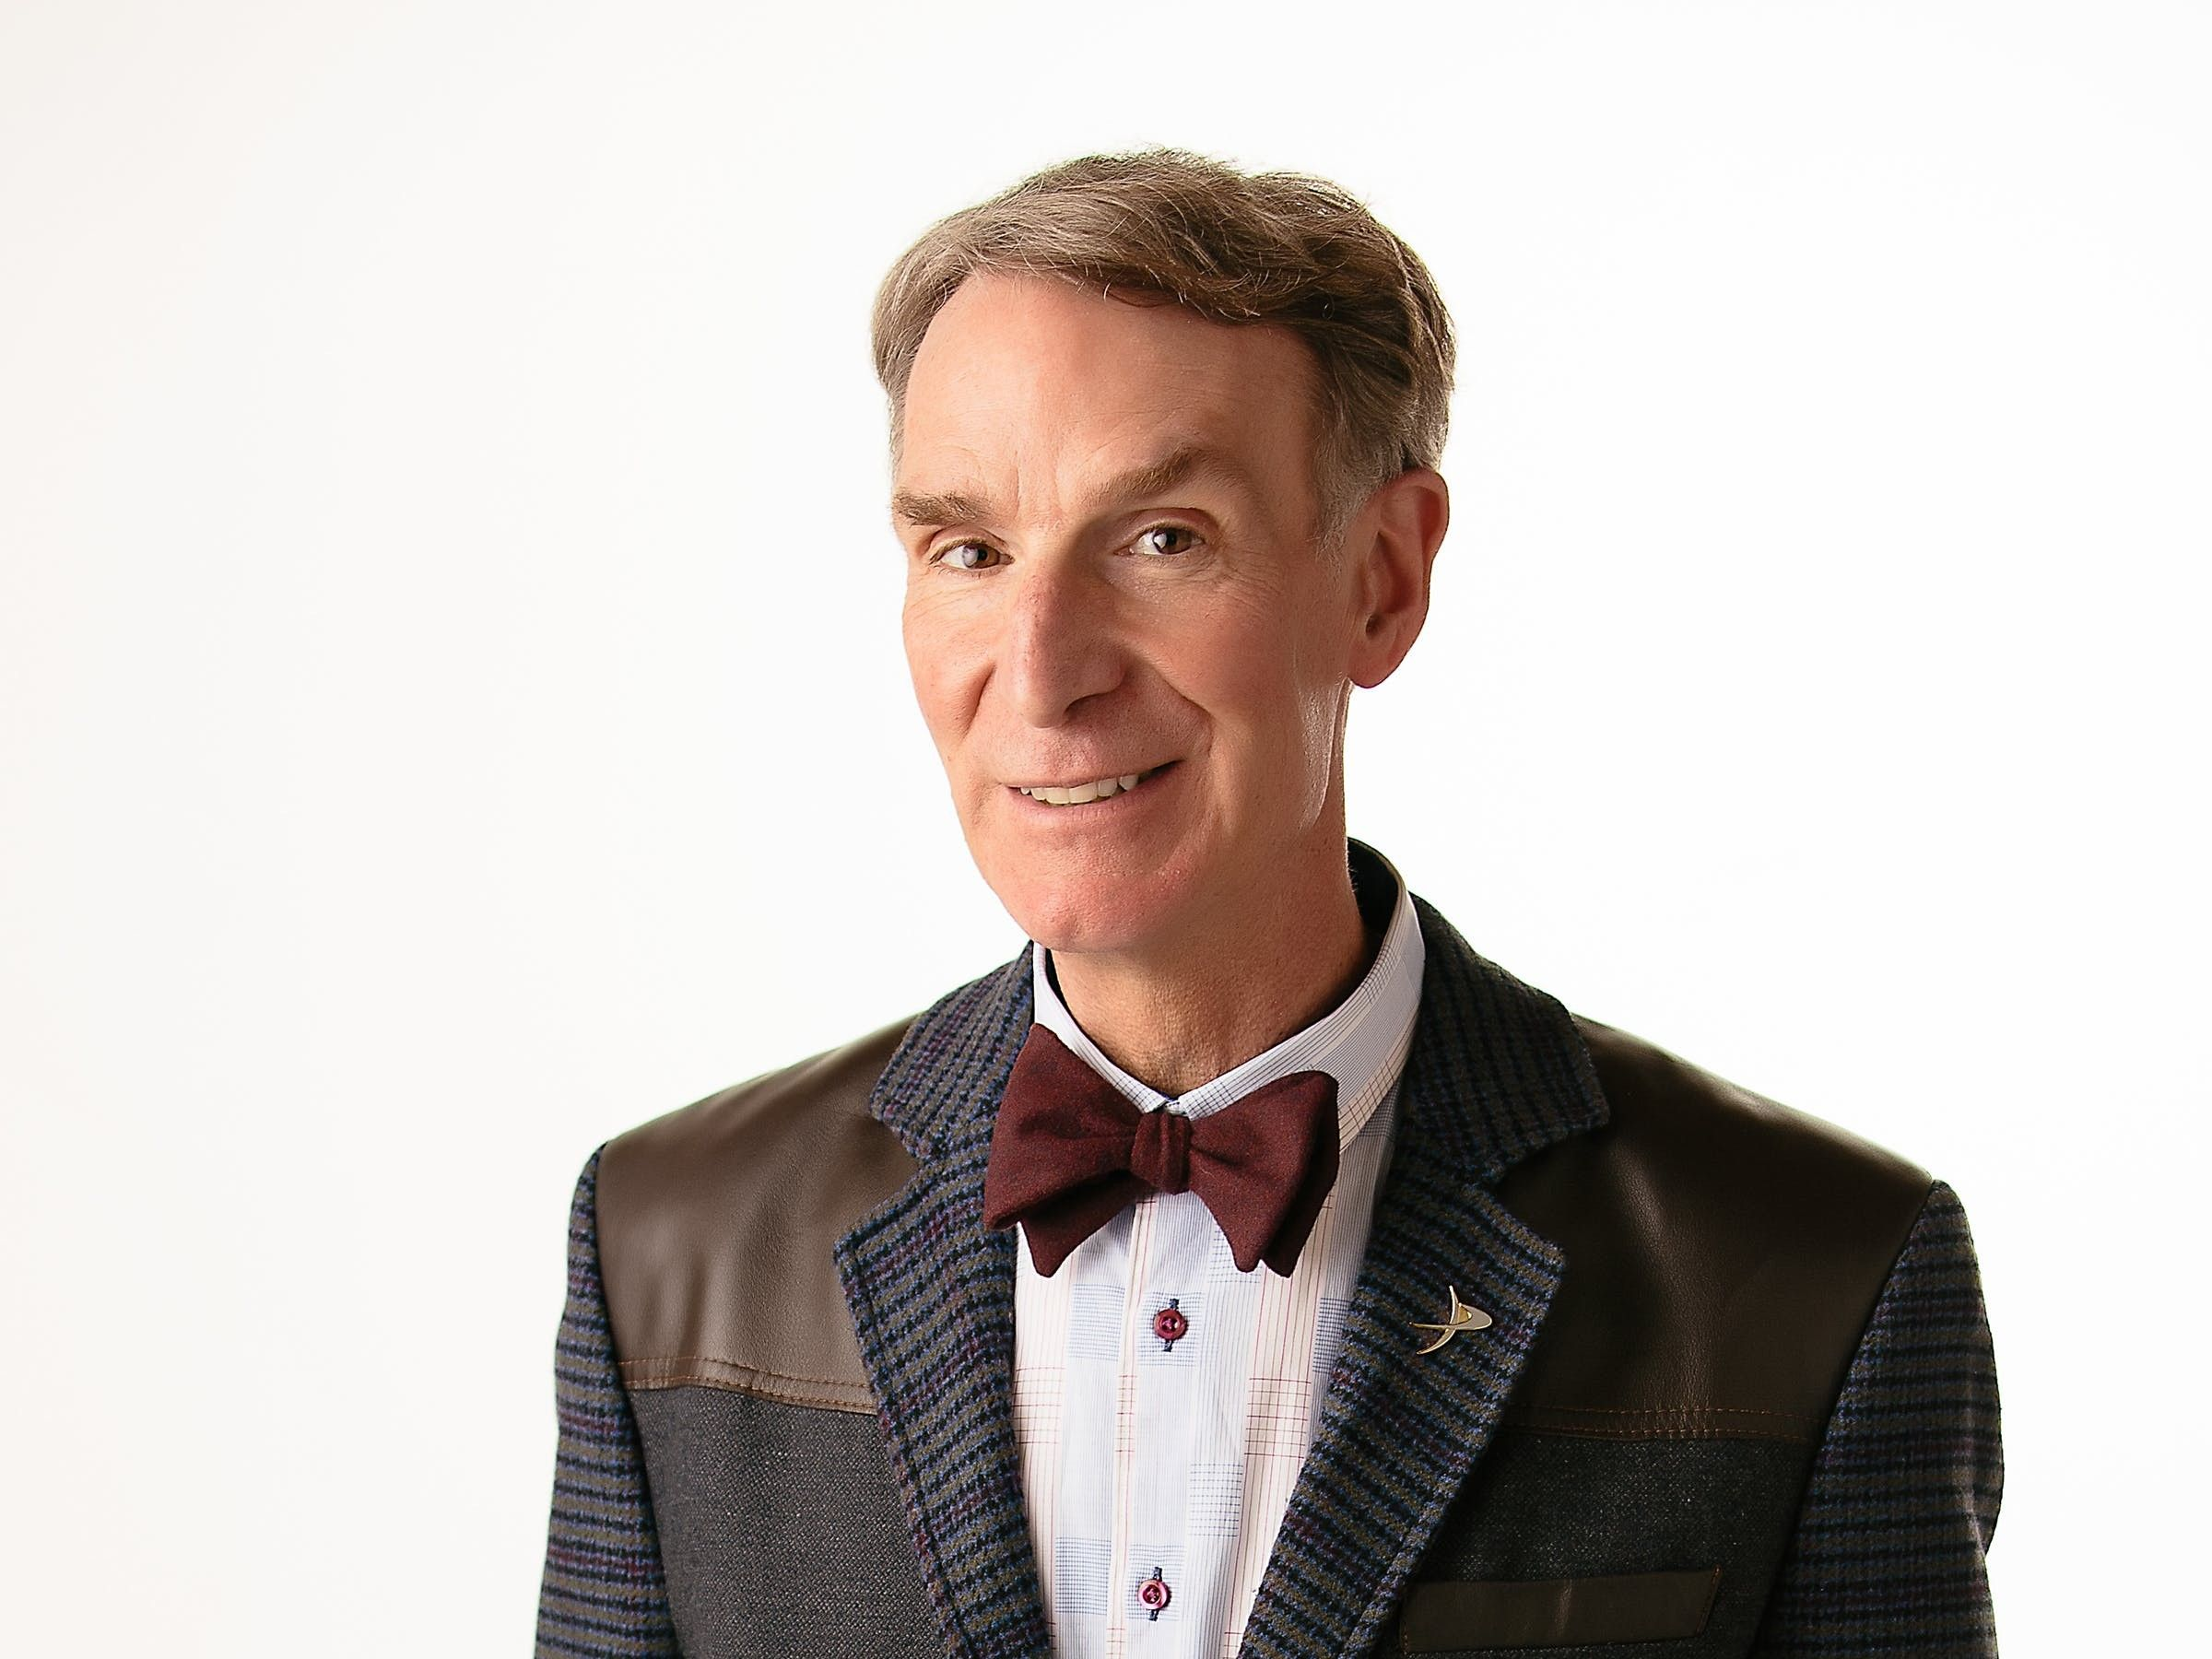 Awesome Bill Nye Wallpaper Check More At S